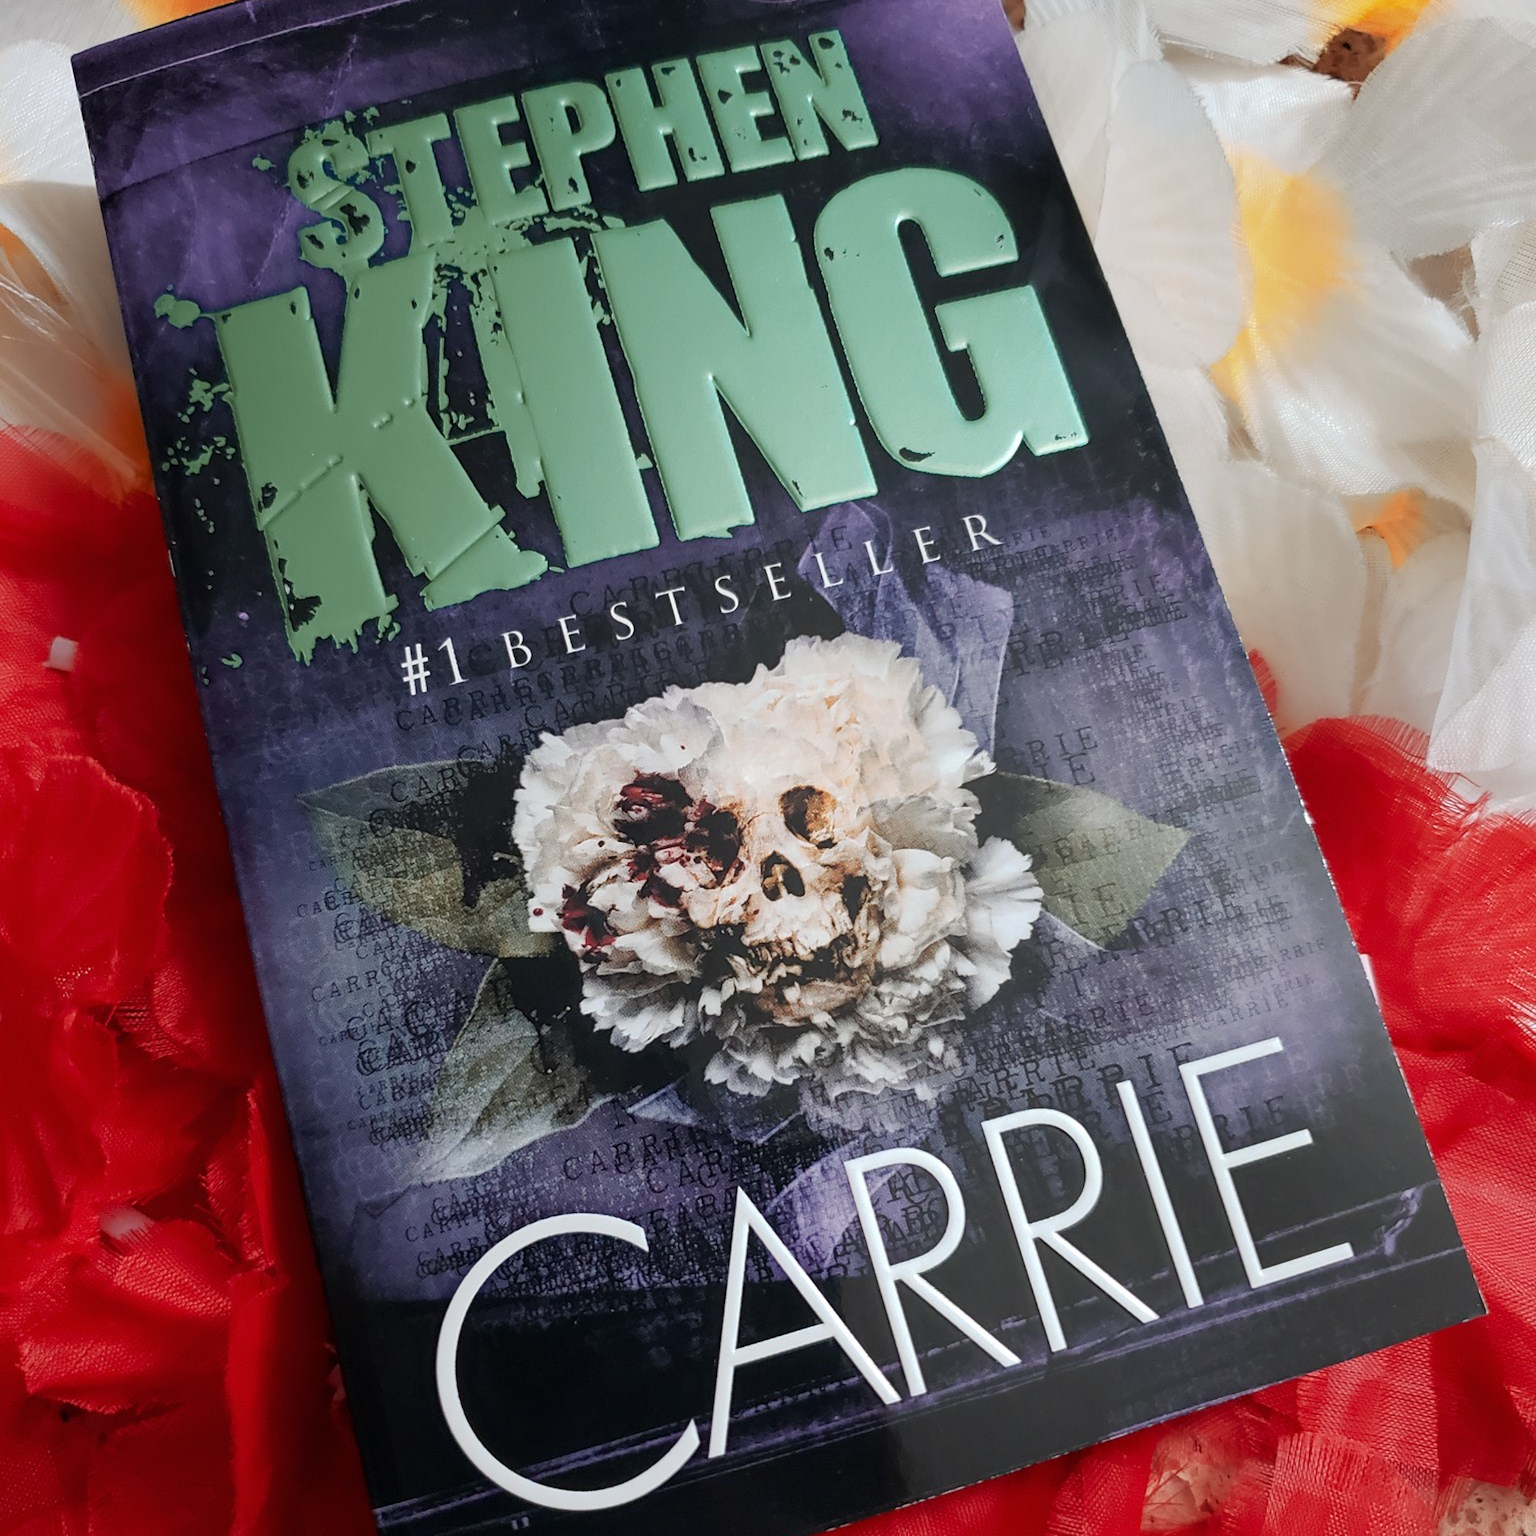 A photo of my copy of Carrie by Stephen King.